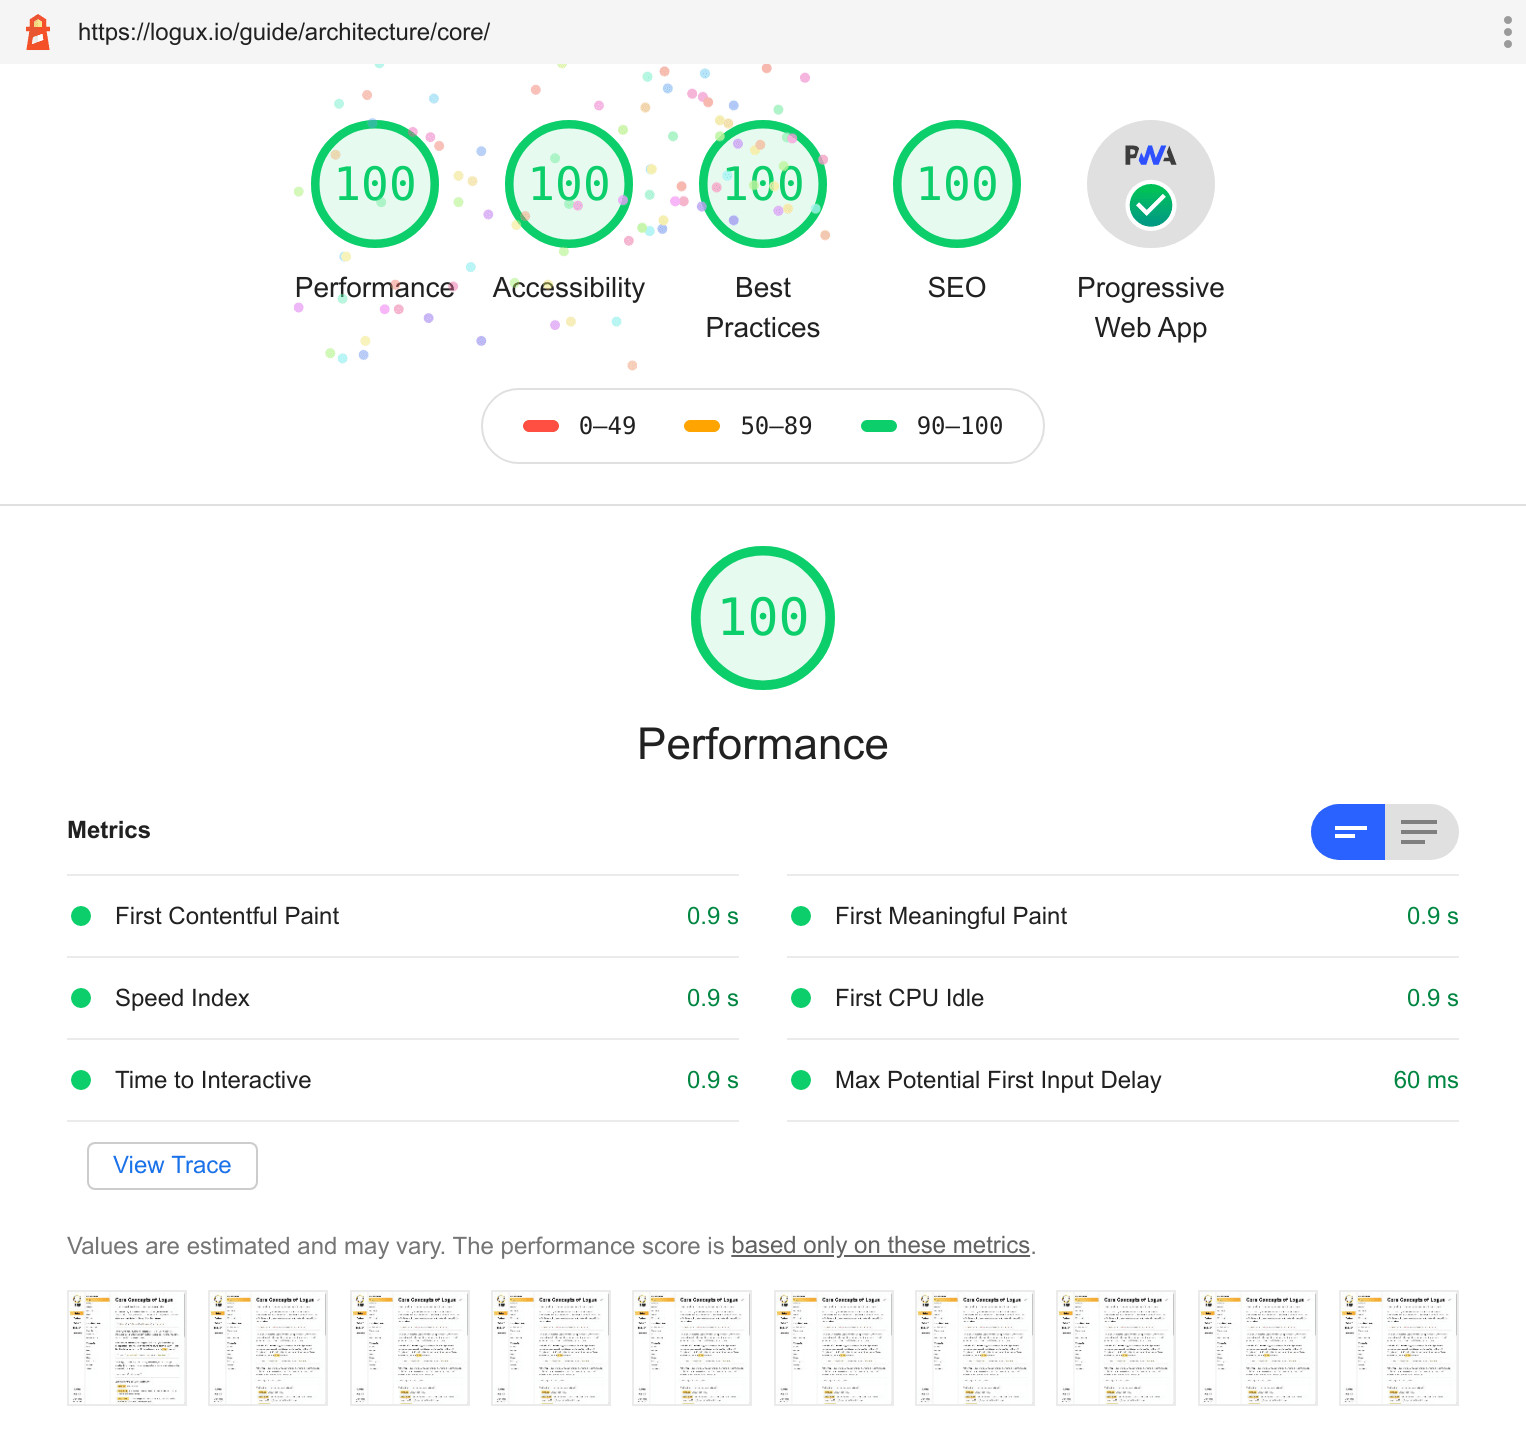 Lighthouse score for Logux website: 100 for performance, accessibility, best practices, SEO, and PWA